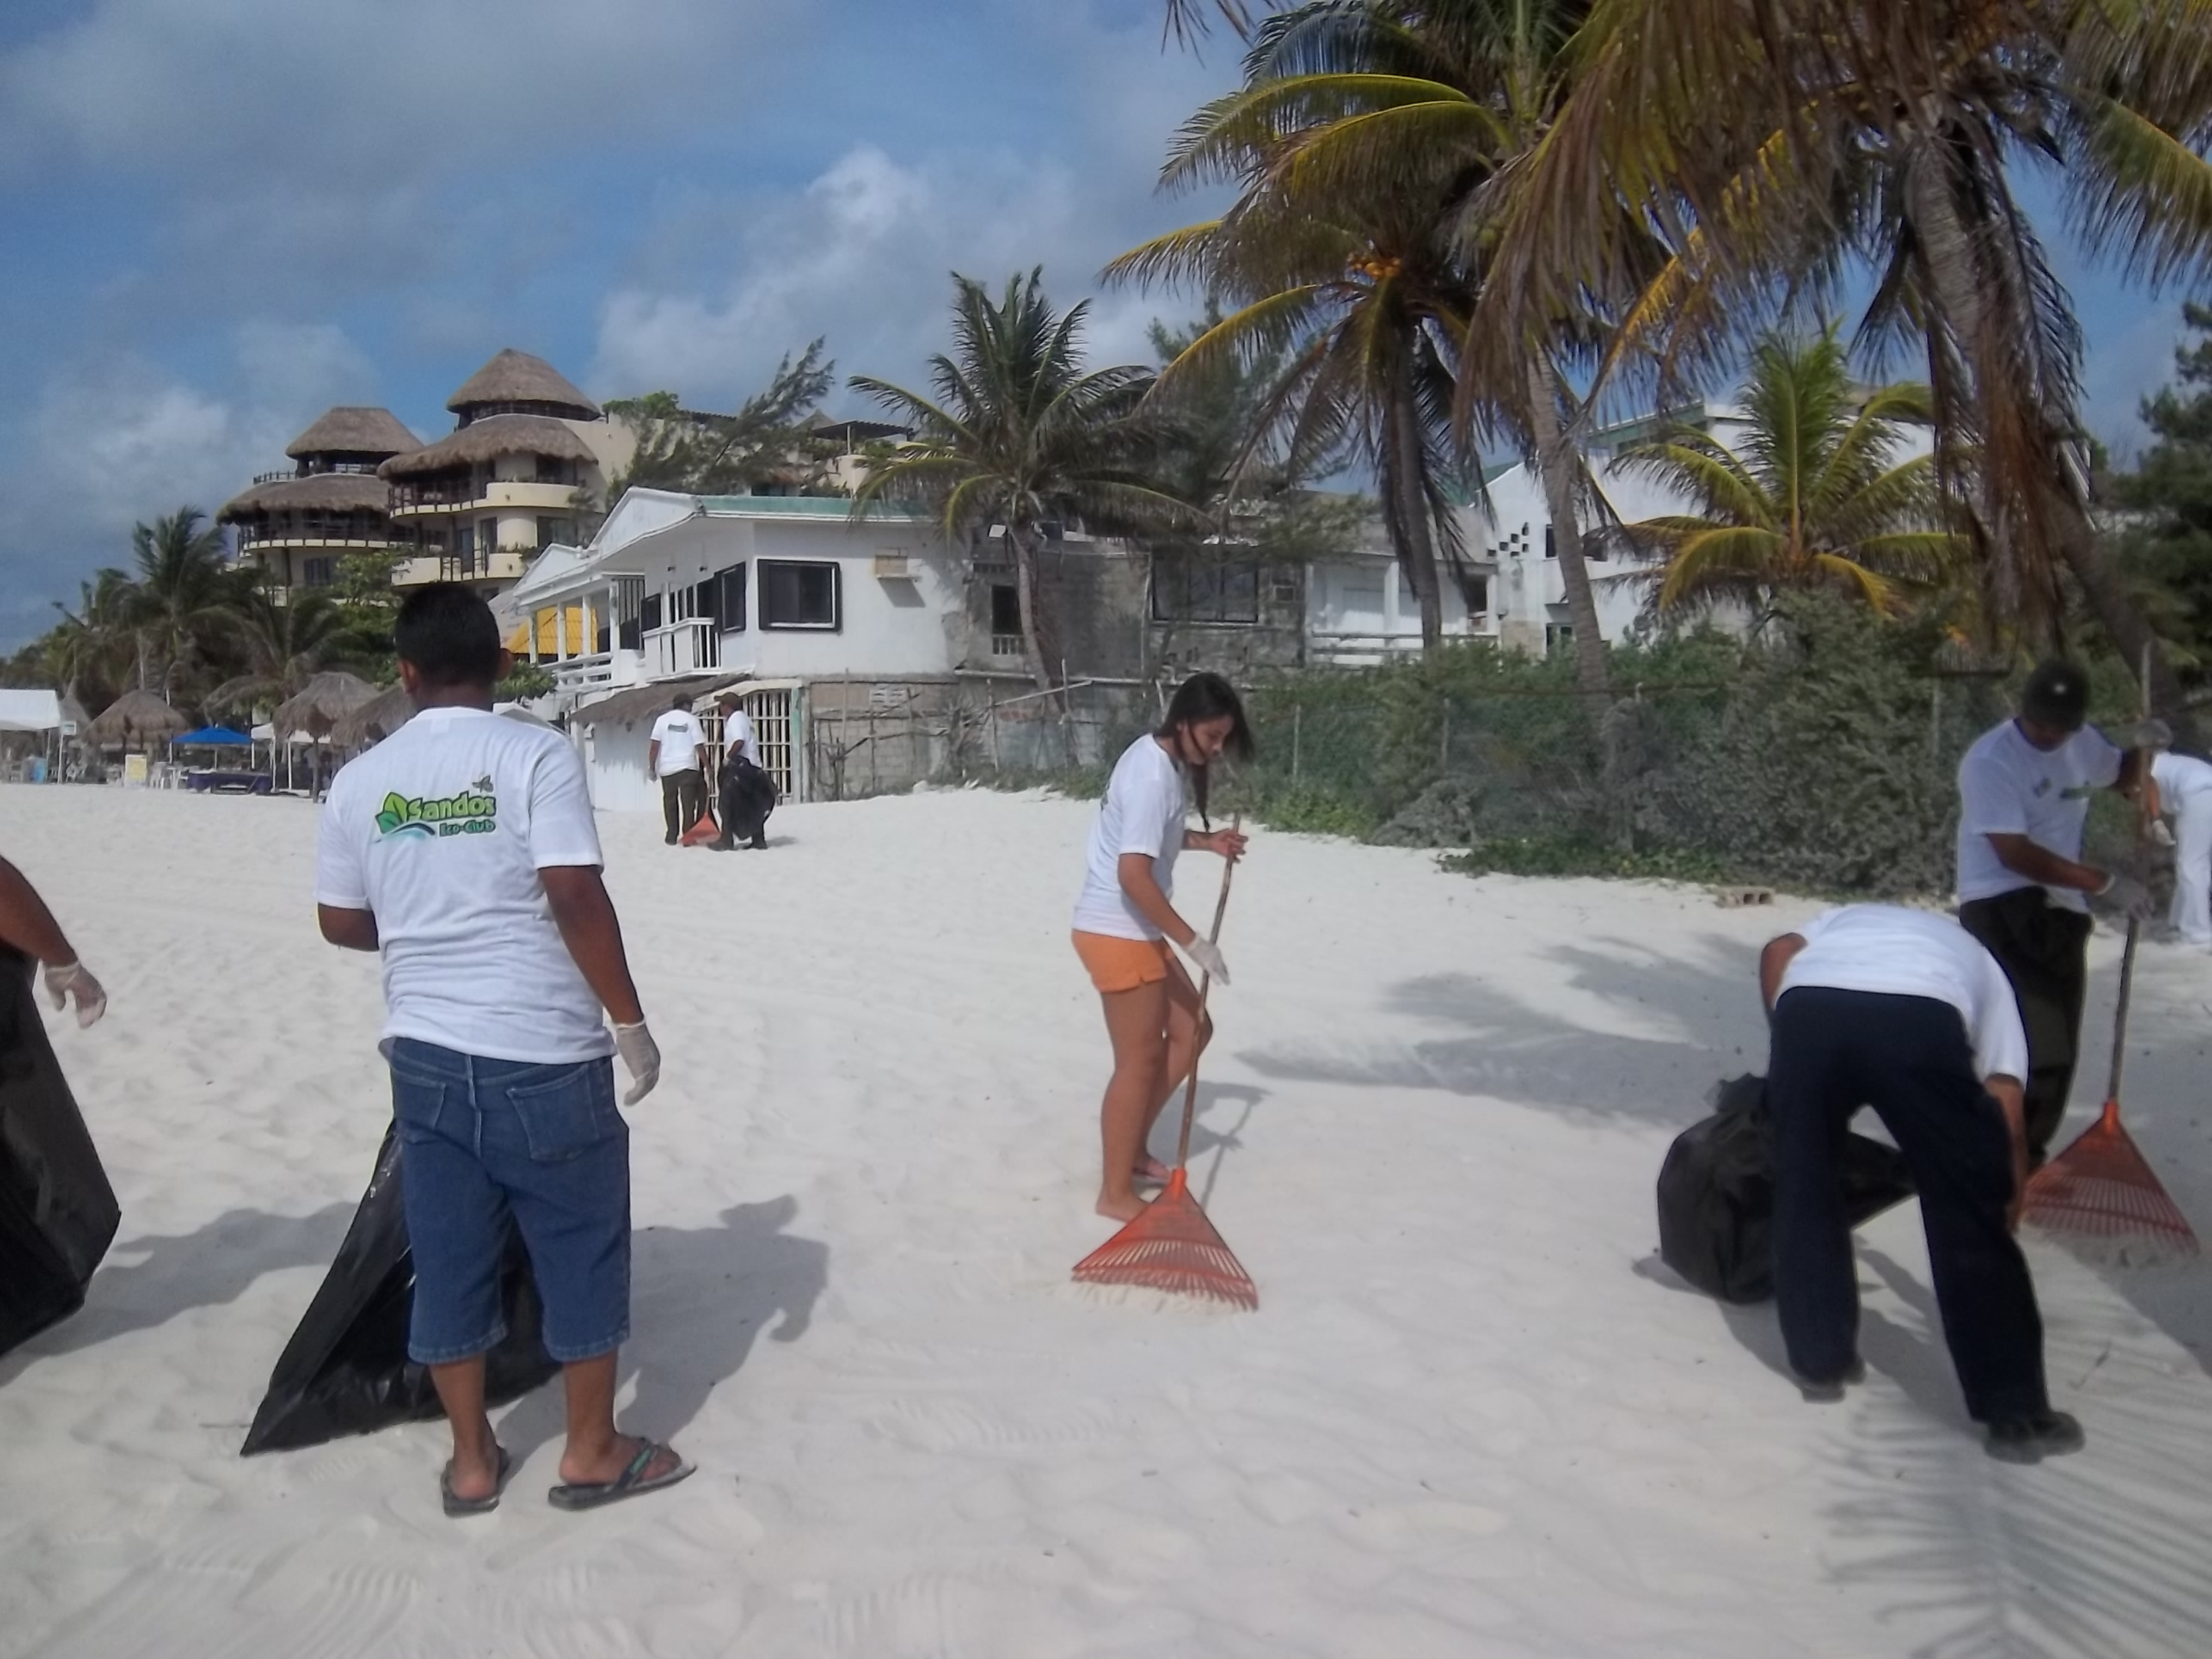 Sandos beach cleanup Playa del Carmen 2